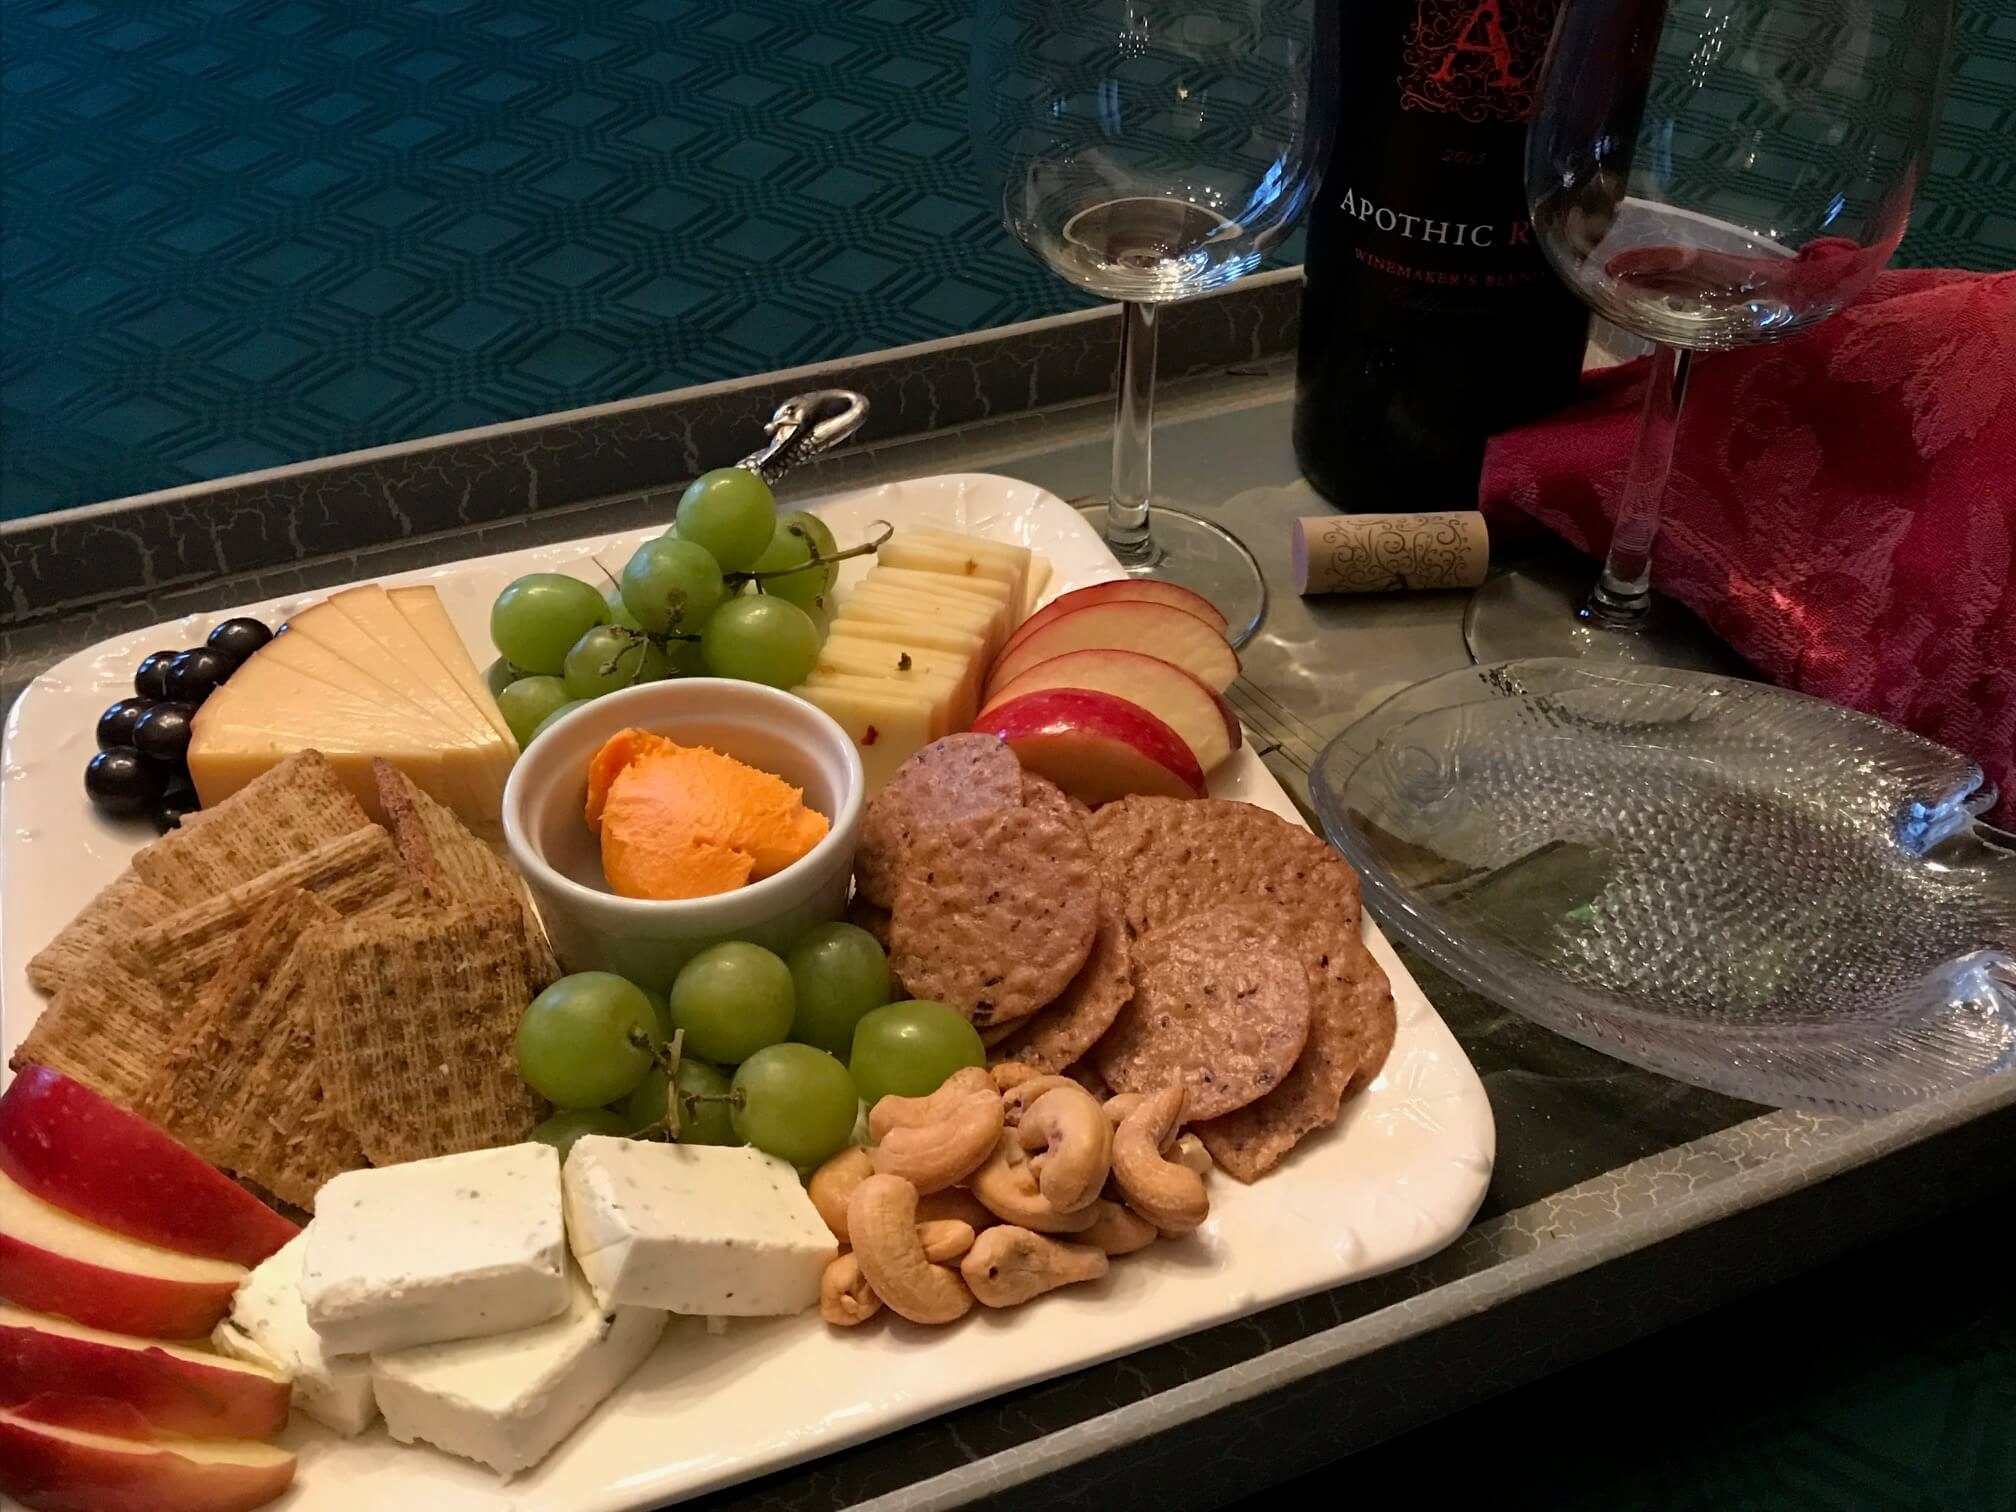 wine/cheese tray at White Swan Inn